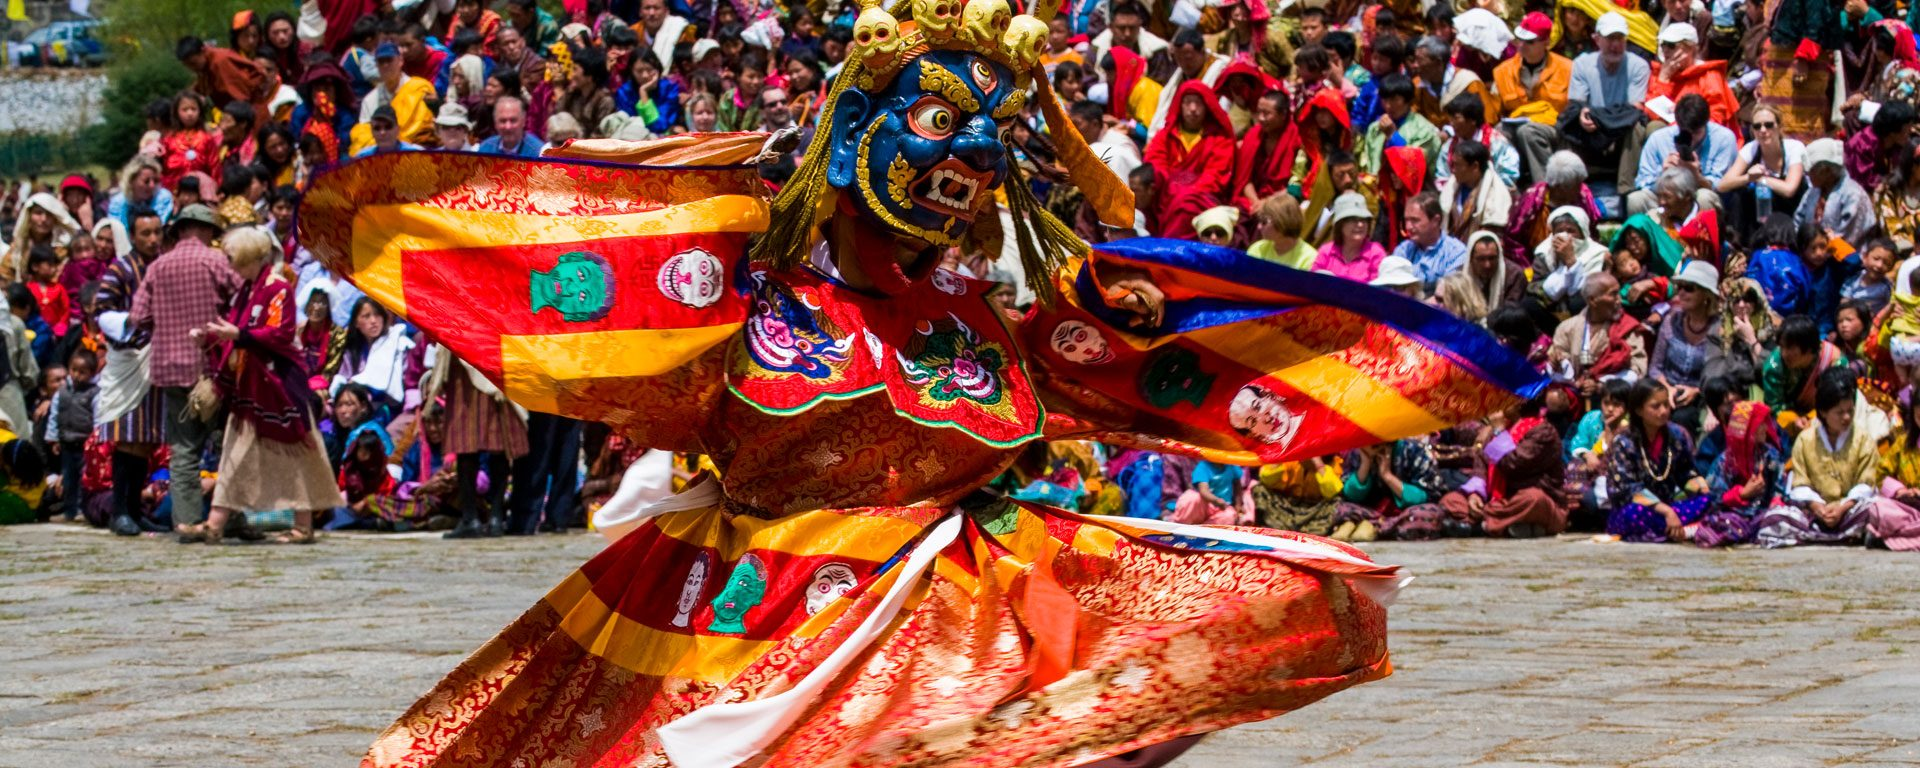 Costumed dancer at Paro Tsechu festival in Paro, Bhutan